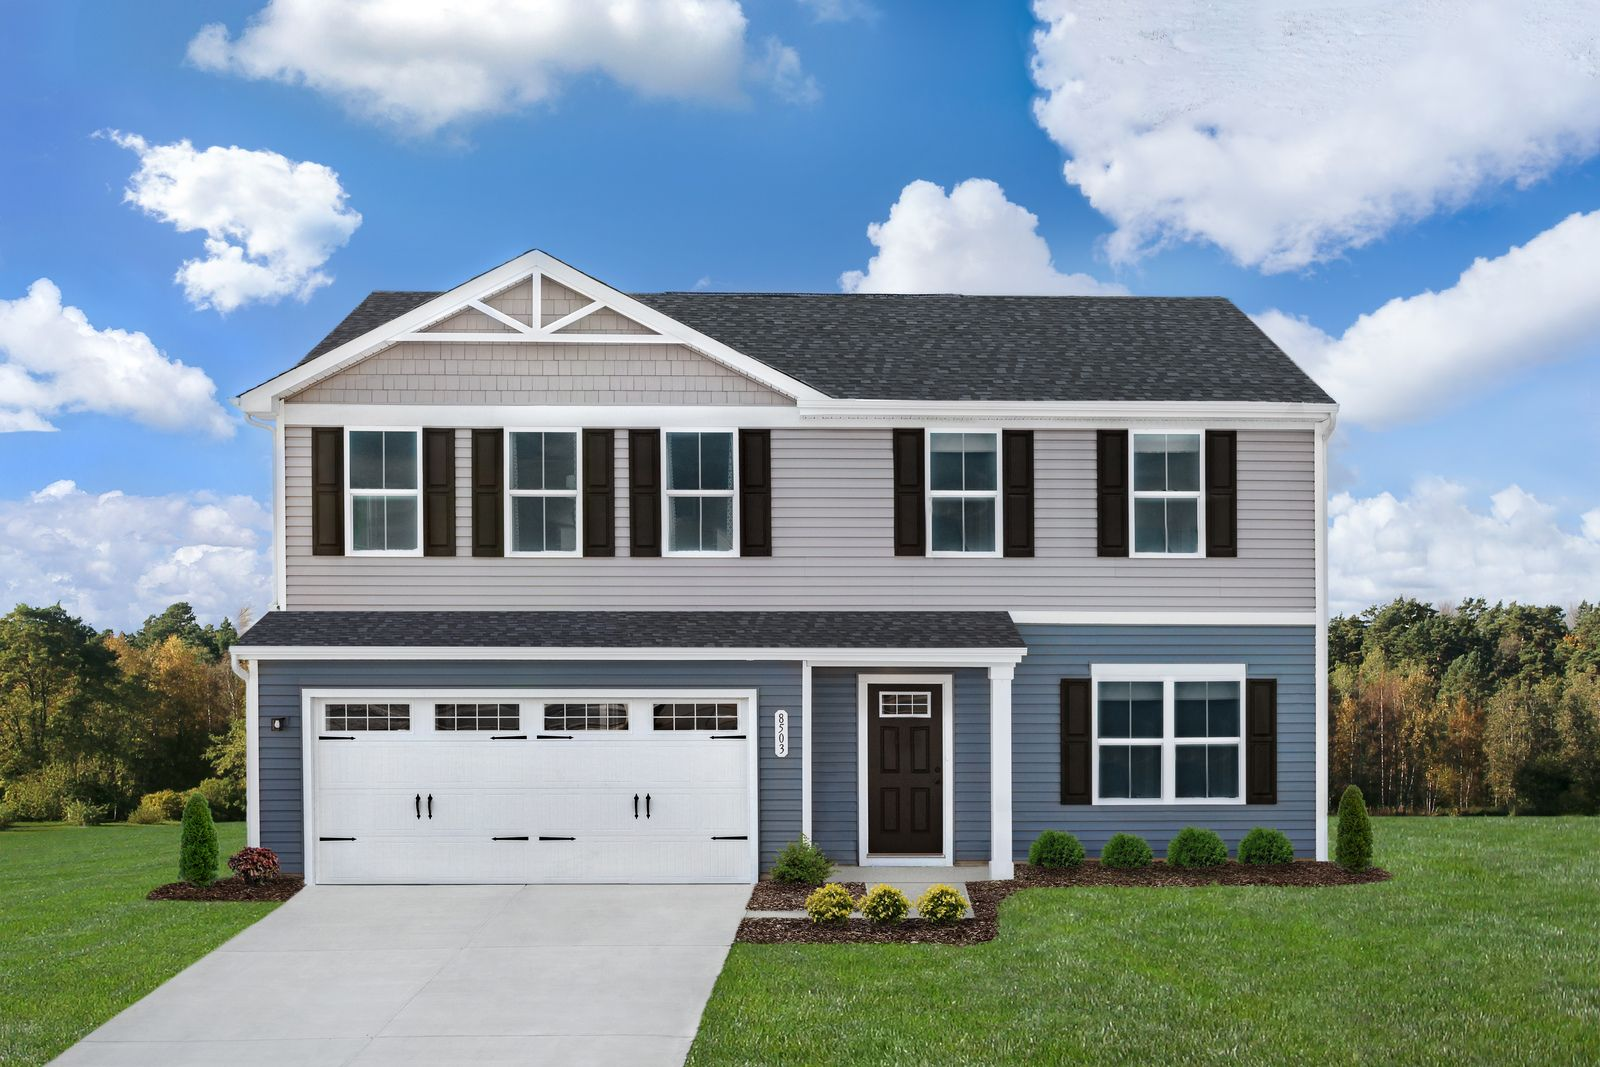 New Homes in Christiana - From Mid $200s:Enjoy a tranquil setting minutes to daily conveniences in Murfreesboro with USDA and $0 down financing options.Schedule your virtual or in-person visit today!